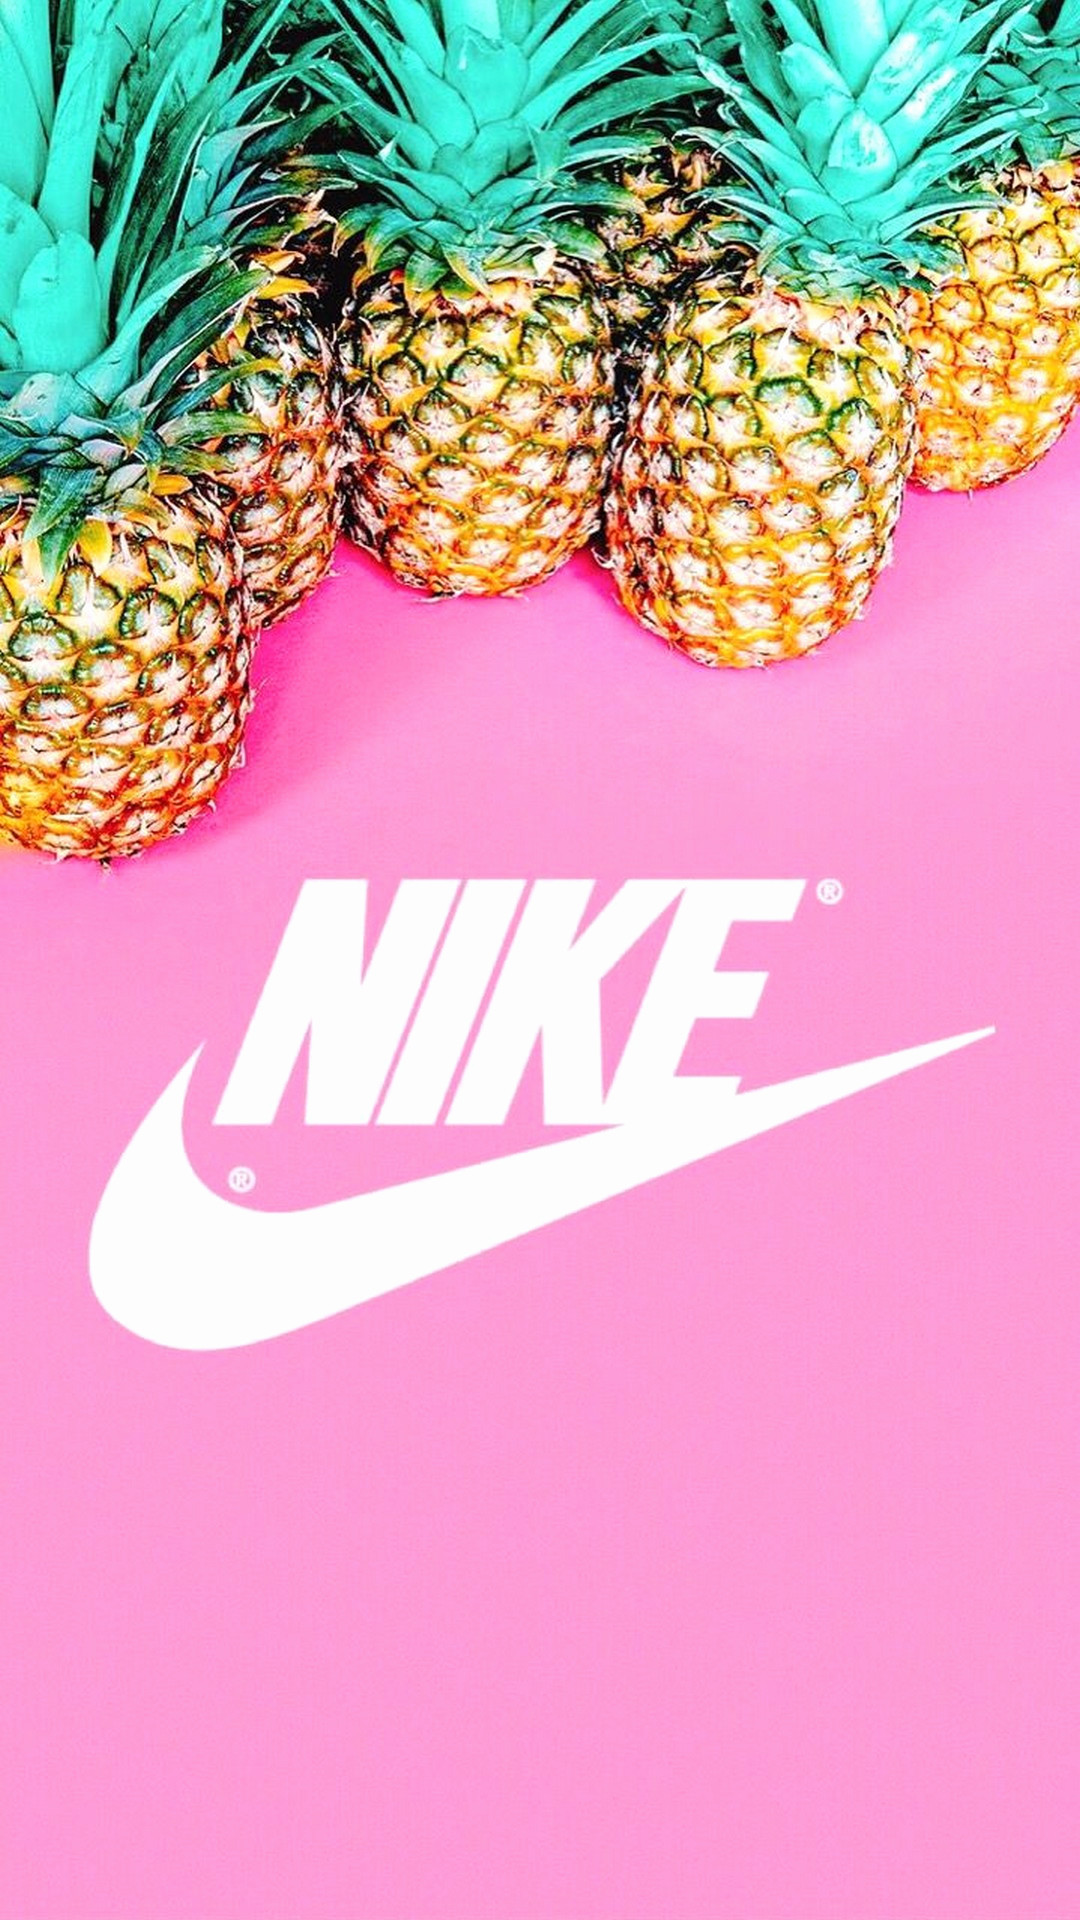 Nike Wallpapers Hd 2018 81 Background Pictures